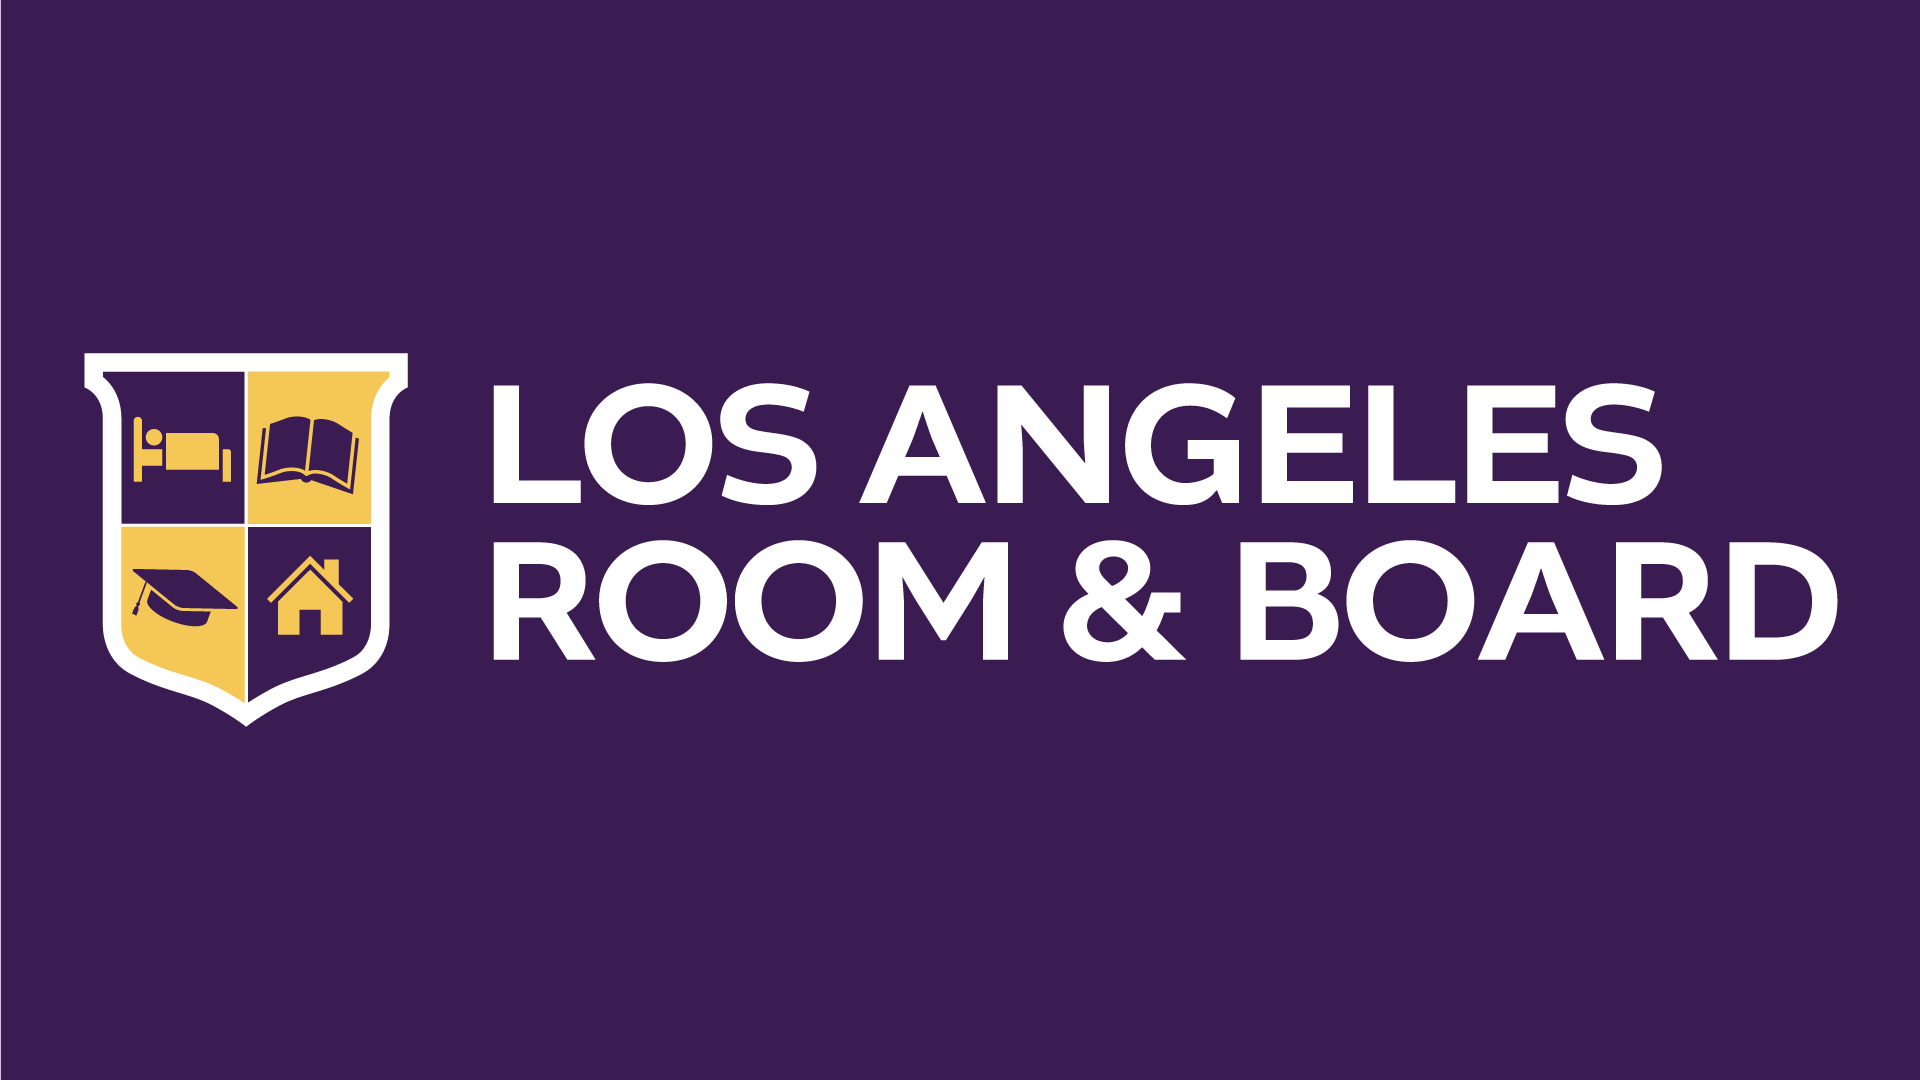 Los Angeles Room & Board